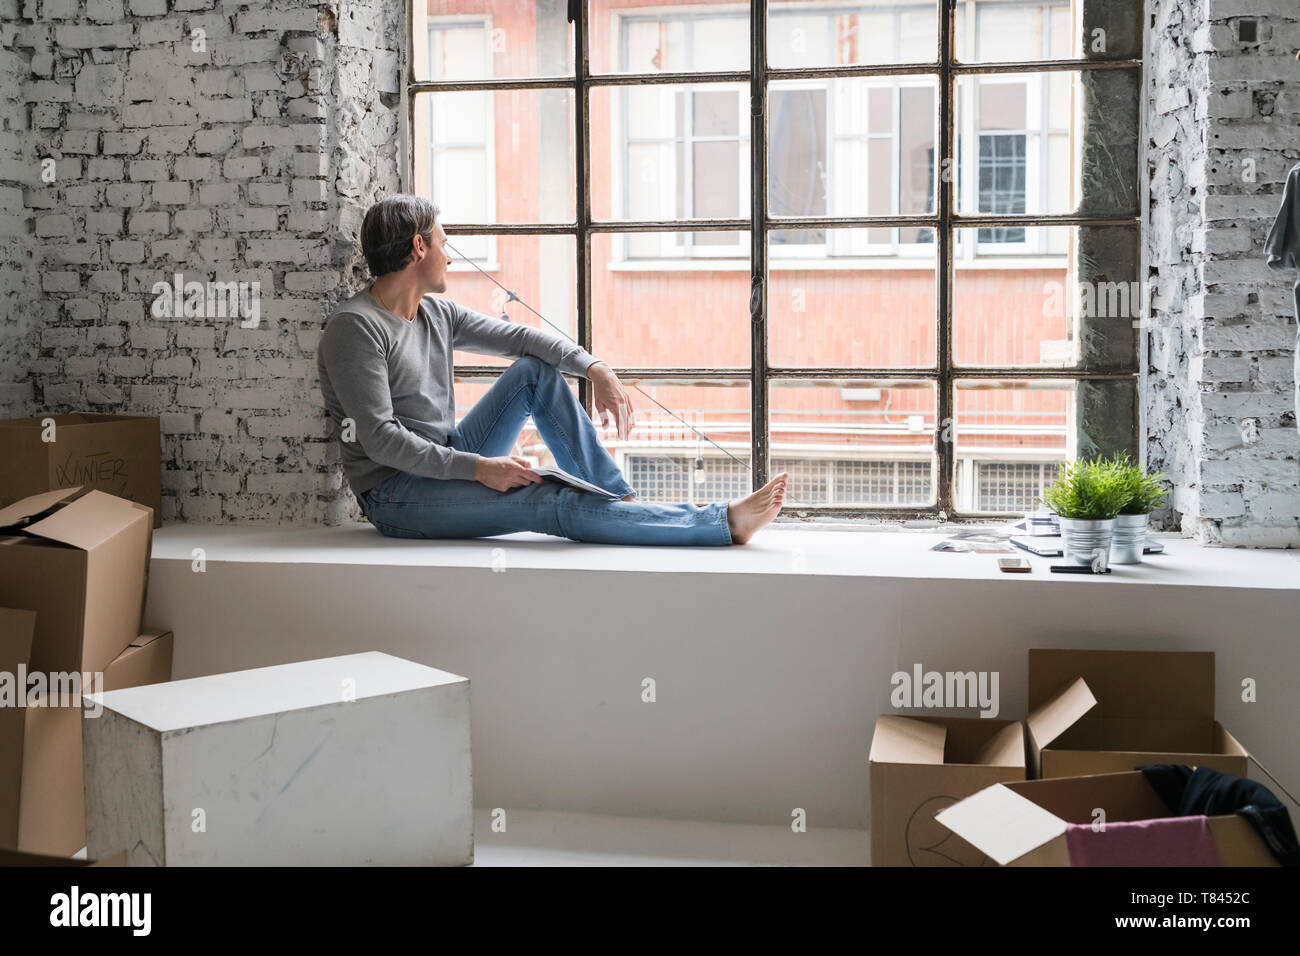 Man moving into industrial style apartment, sitting on window ledge looking through window - Stock Image